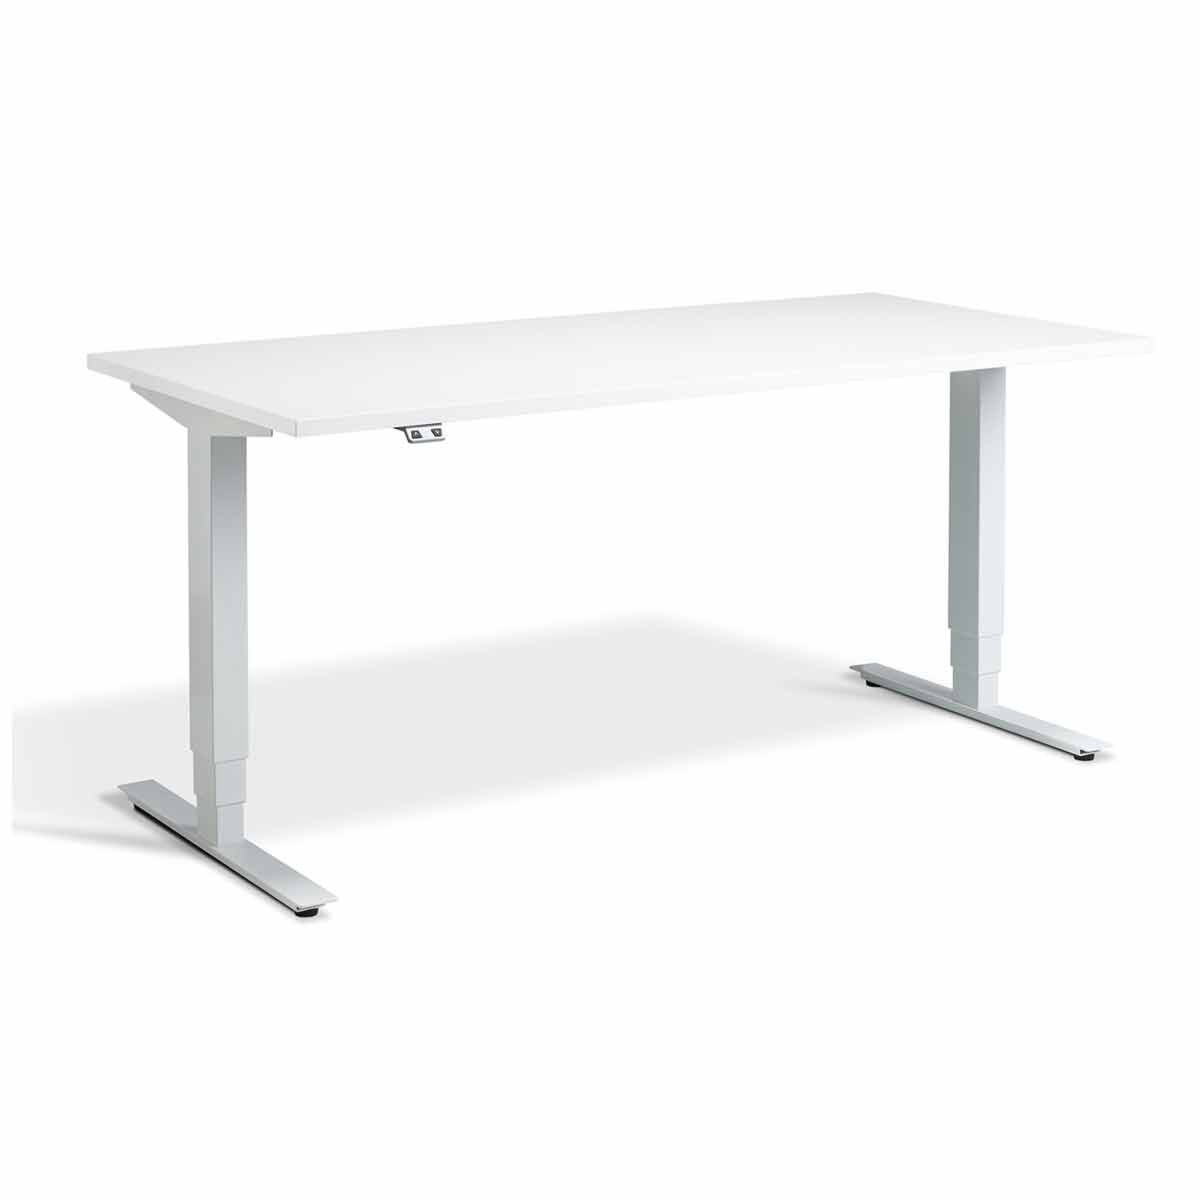 Lavoro Advance Dual Motor Height Adjustment Desk White Frame 1200 x 800